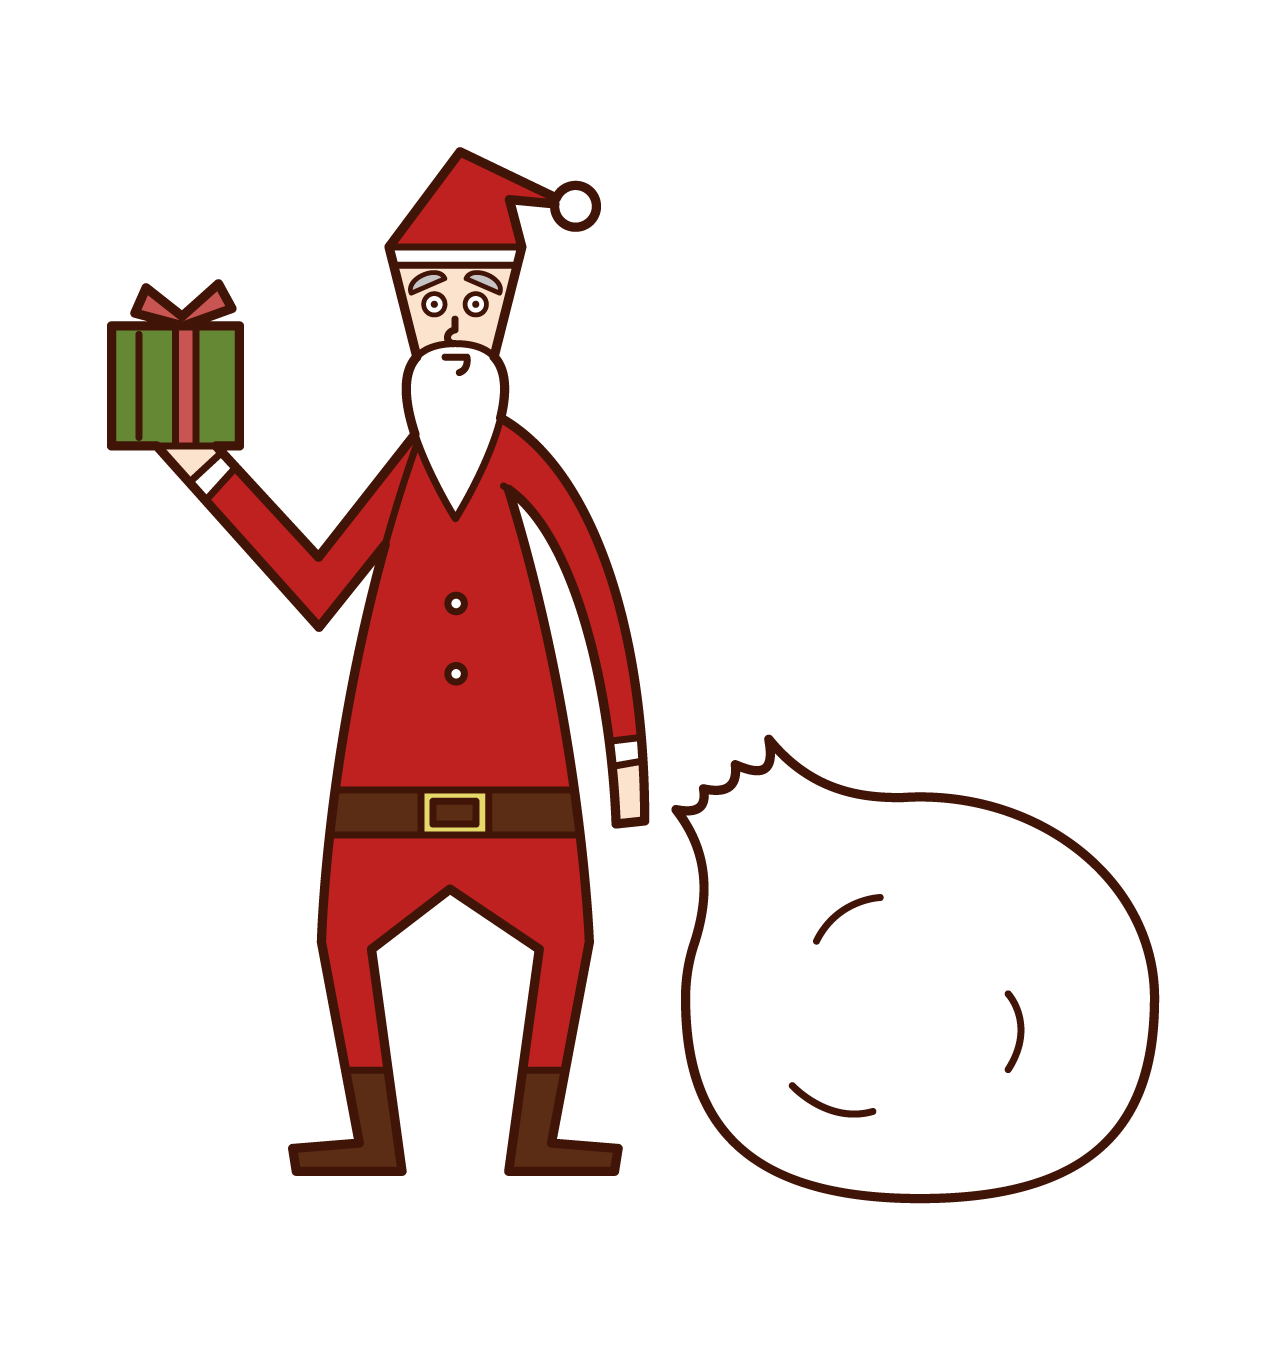 Illustration of Santa Claus passing a present